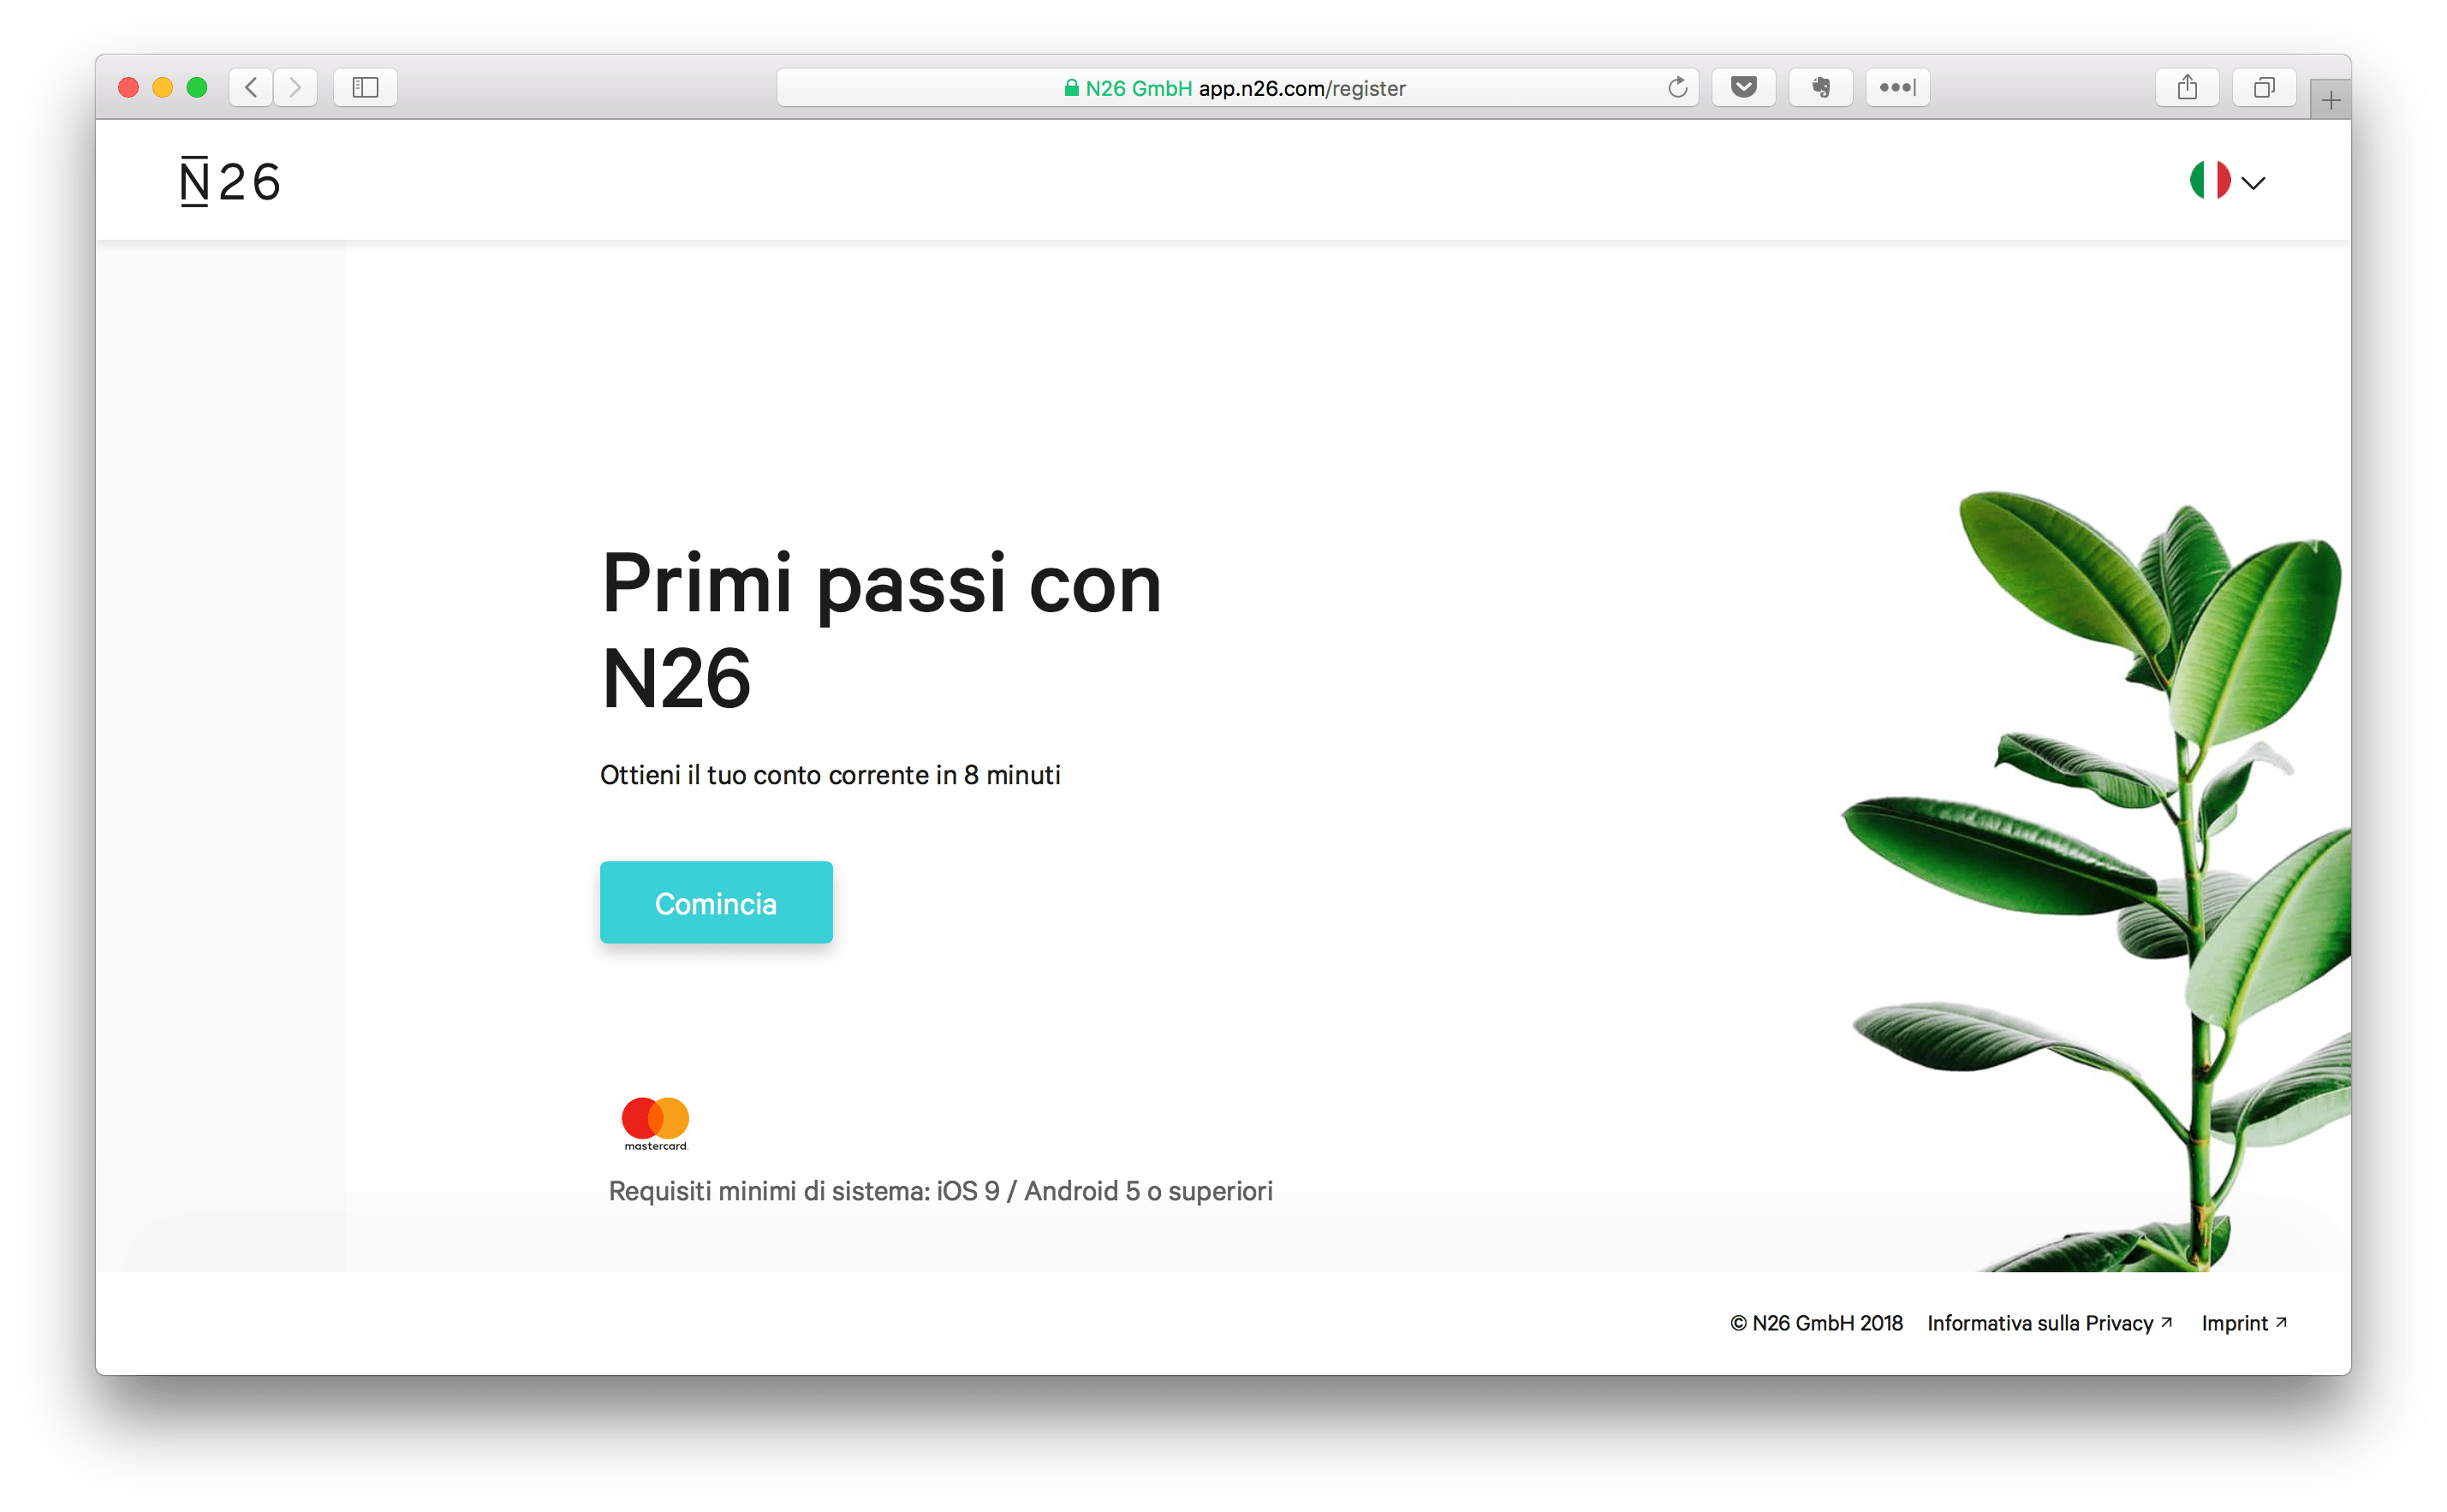 start the N26 registration process